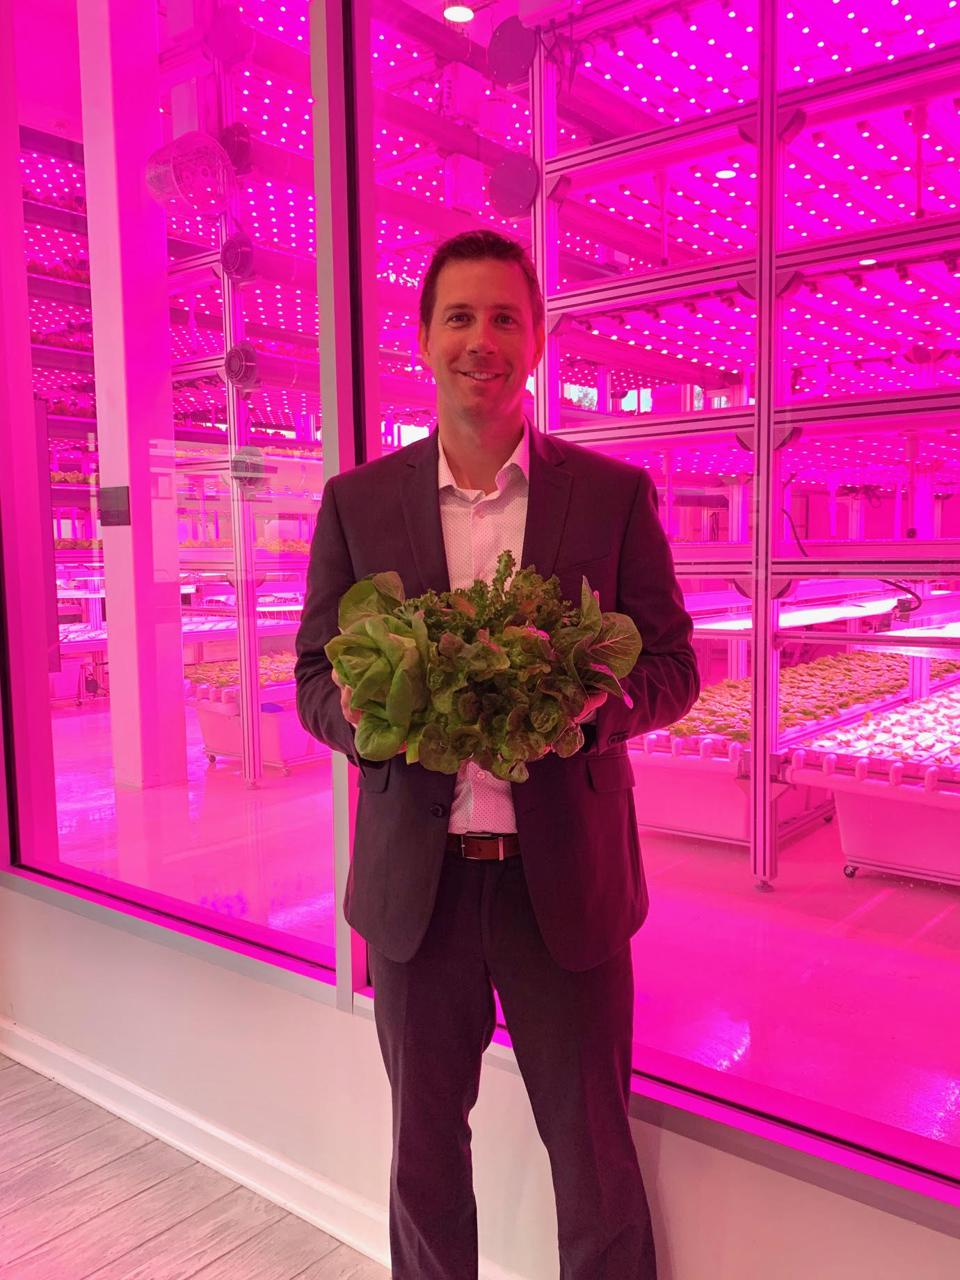 This Ain't Your Grandfather's Lettuce: The Farm Of The Future